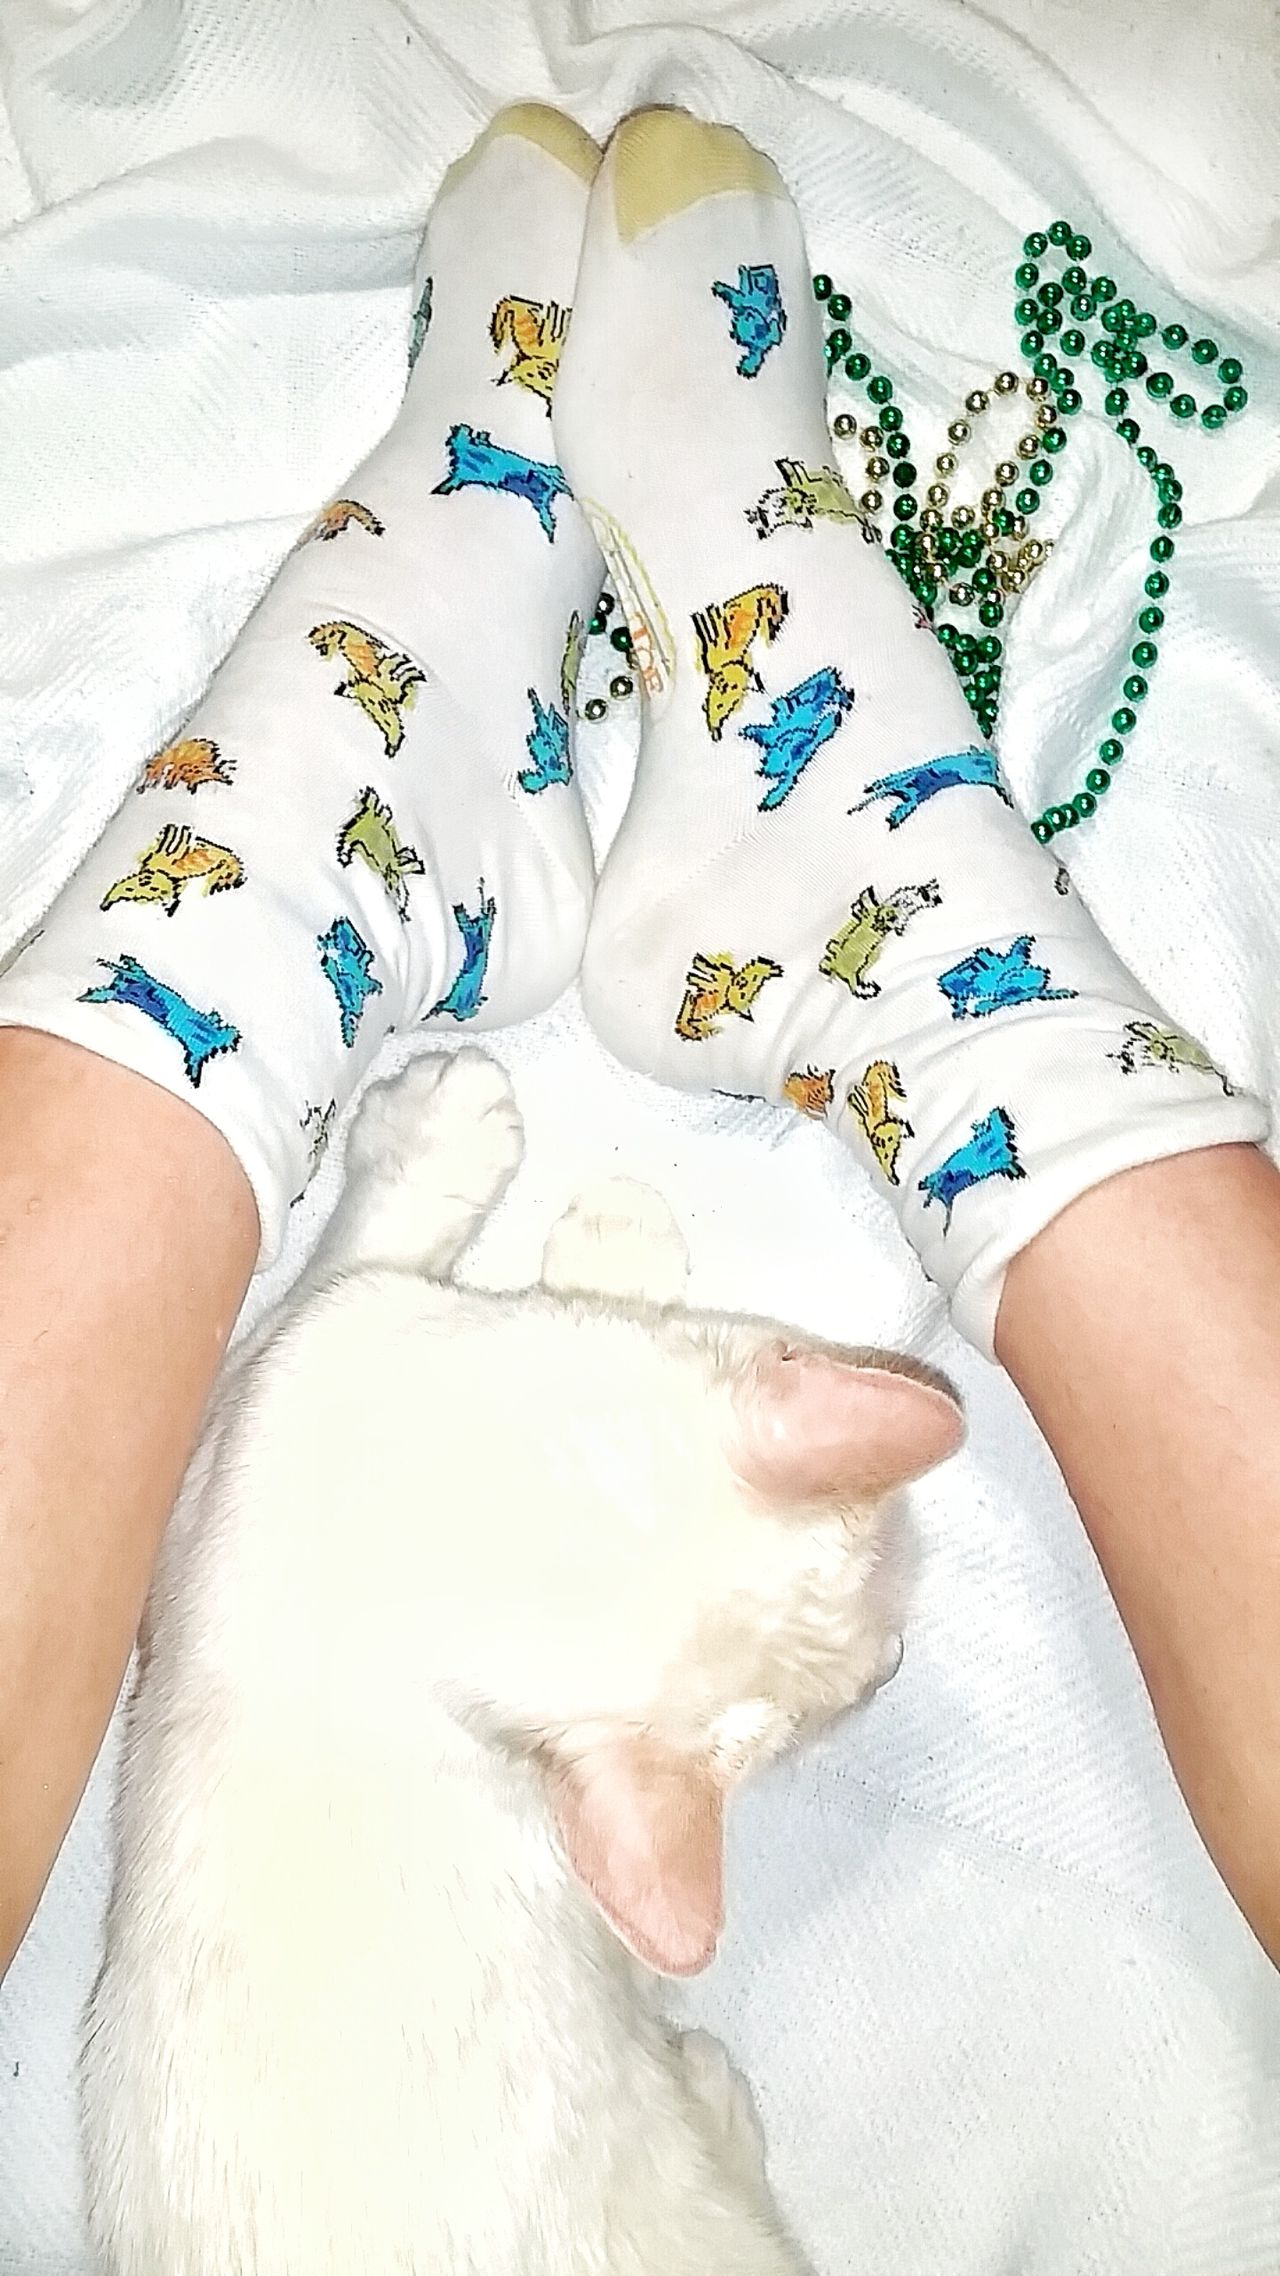 TK Maxx Socksie Pets One Animal Foot Multicolors  Cat Lovers Animal Colorful Socks Cat Cozy Comfortable Softness Cute Socks Clothing Socks Funny Socks Cat Socks Texture Funny Cat Lazy Cat Colorful Design Close-up Bright Colors Multi Colored